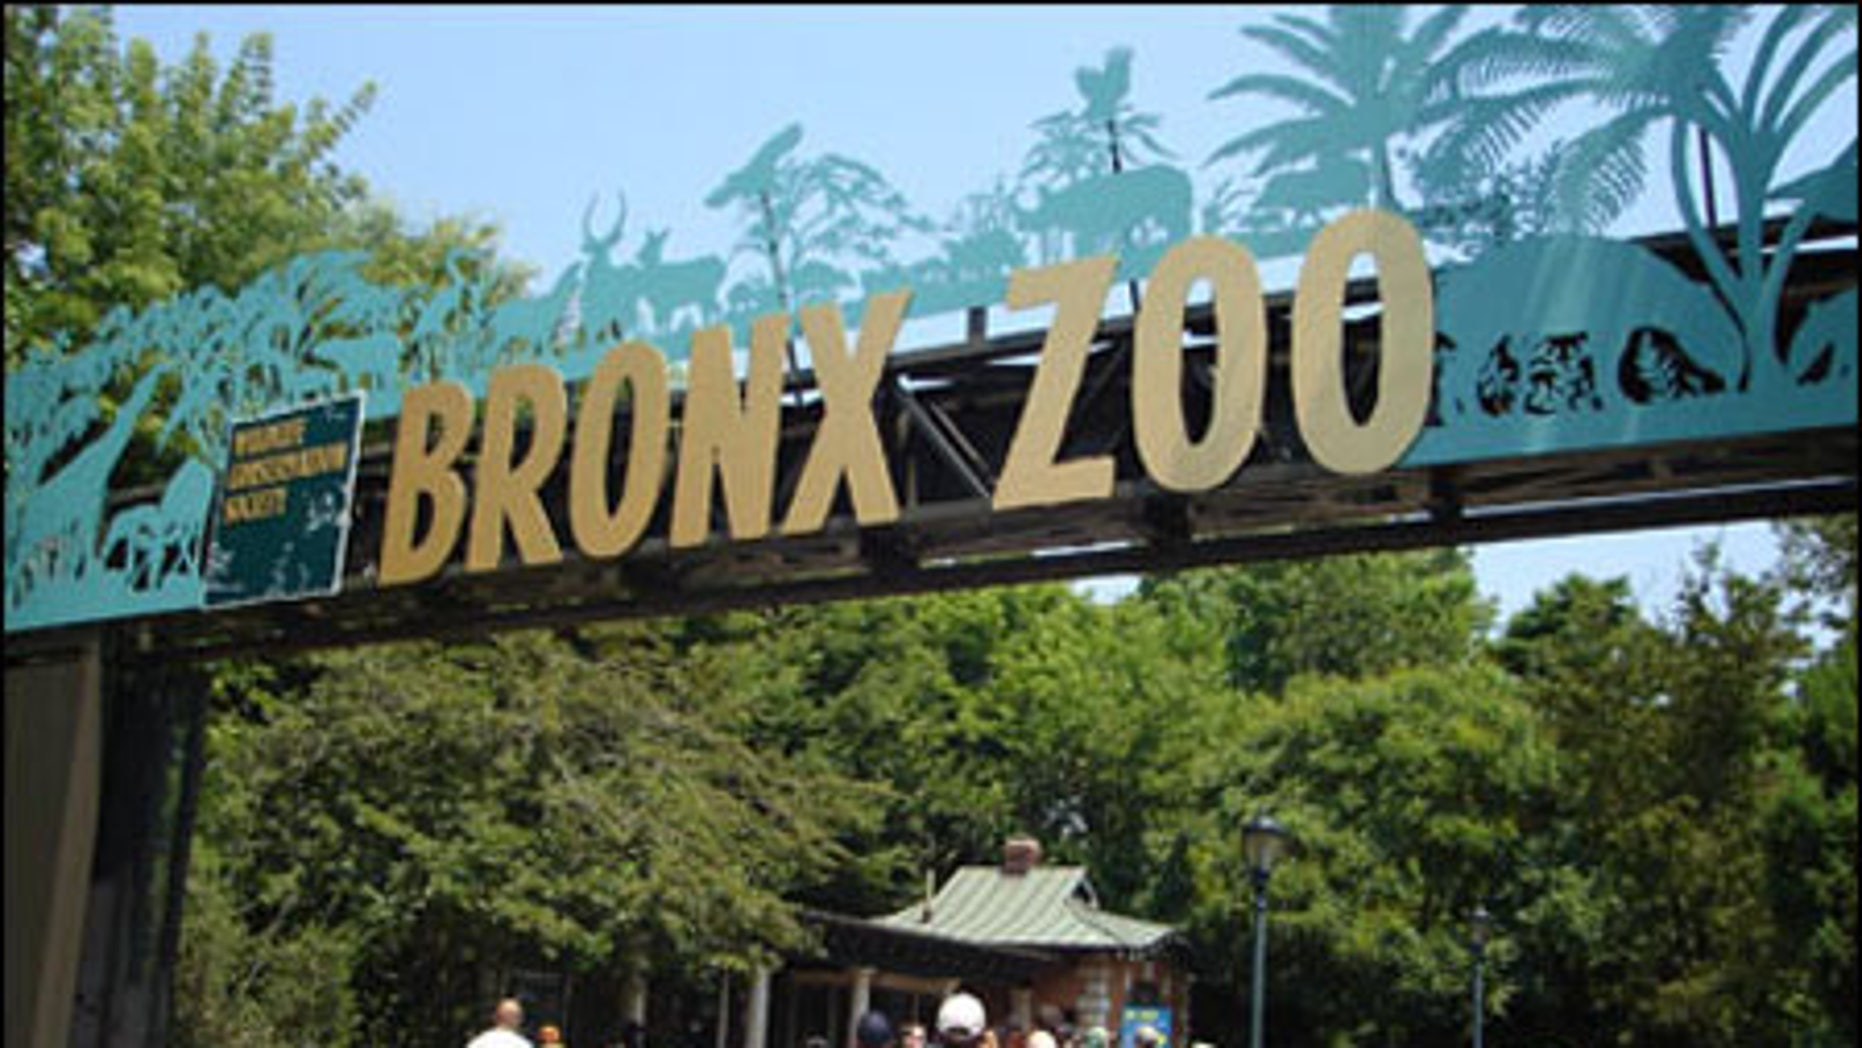 The Bronx Zoo in New York.